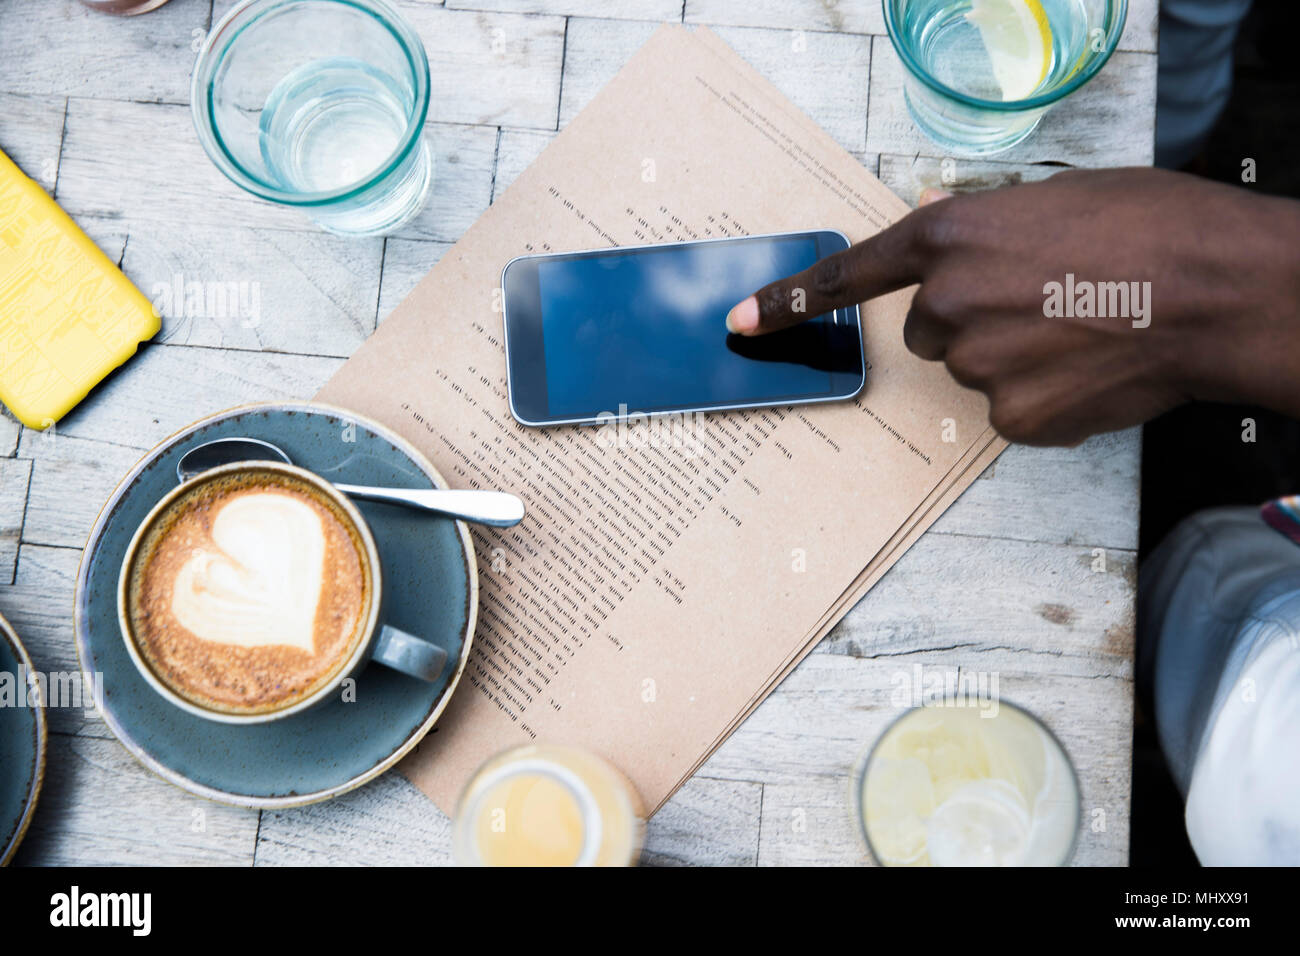 Coffee, mobile phone, menu on wooden table - Stock Image